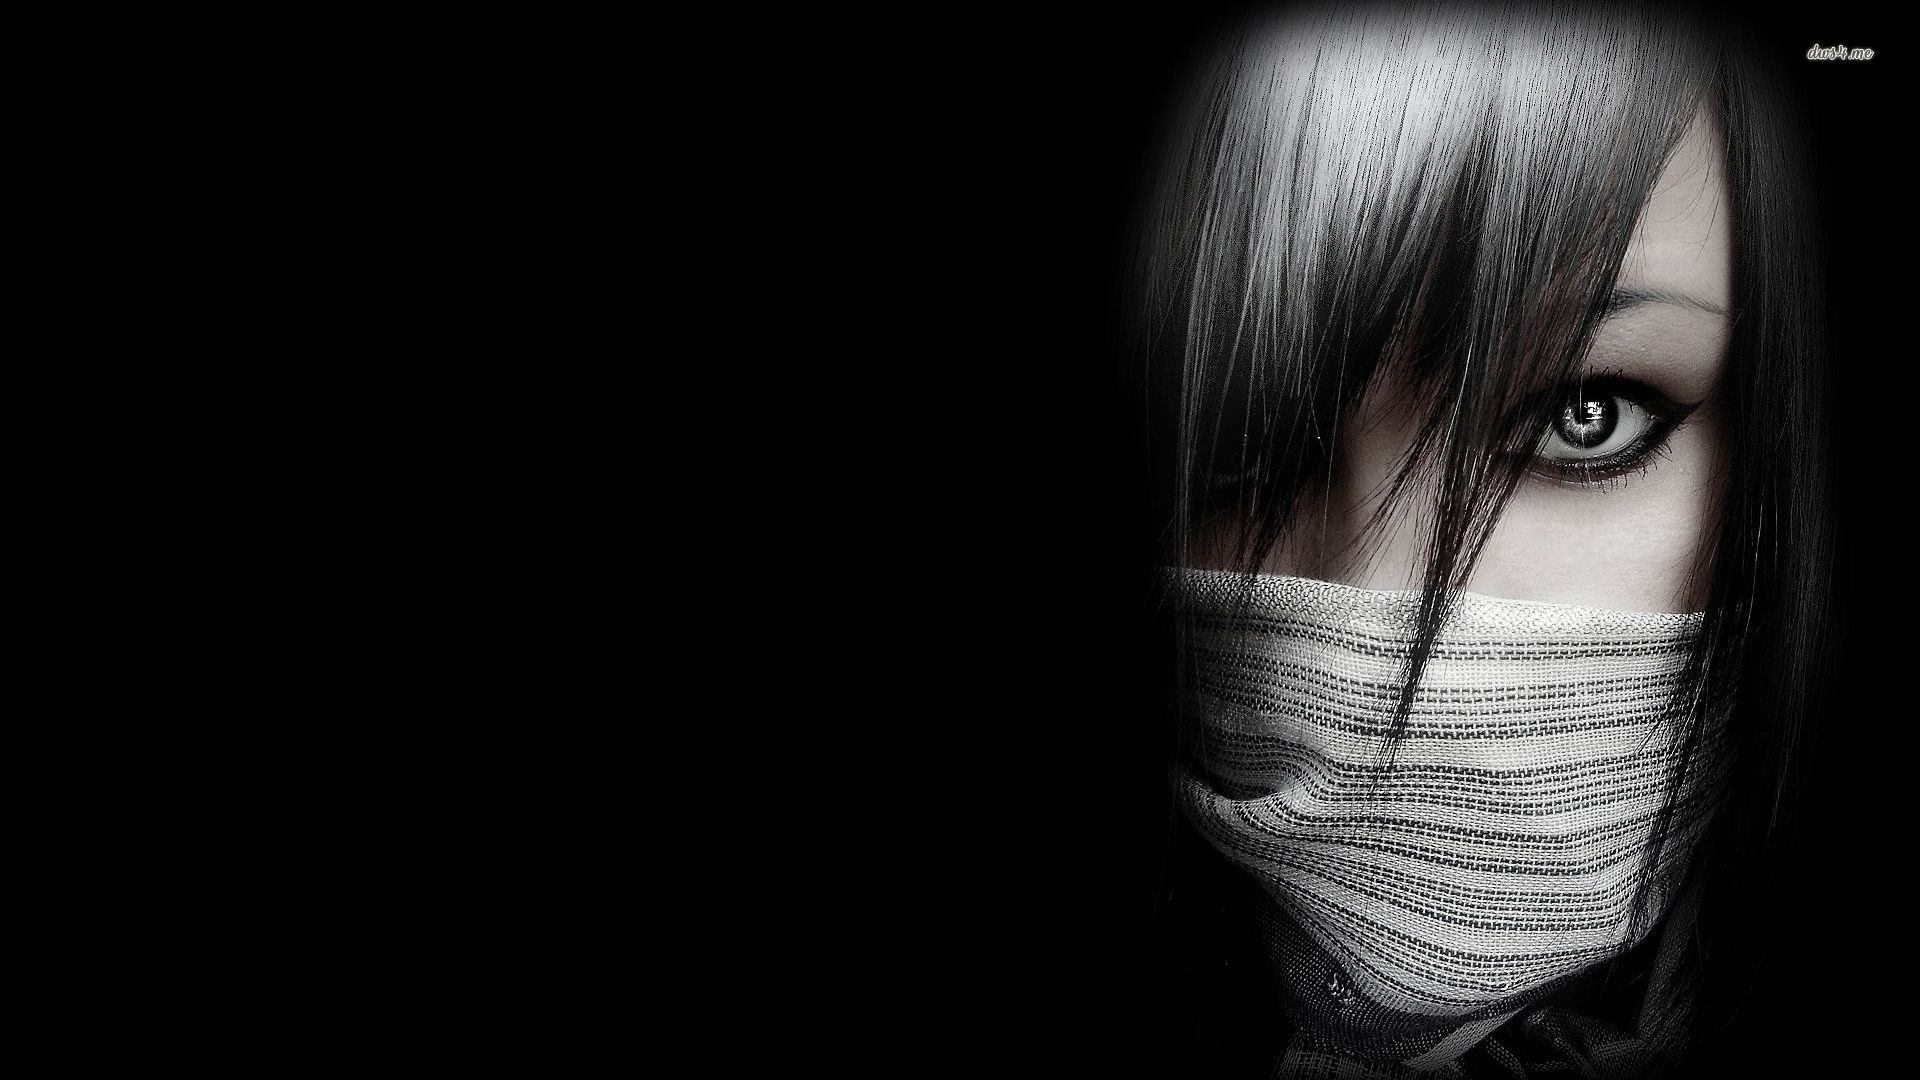 Sad Boy And Girl Wallpaper Full Hd Emo Backgrounds For Boys 46 Images